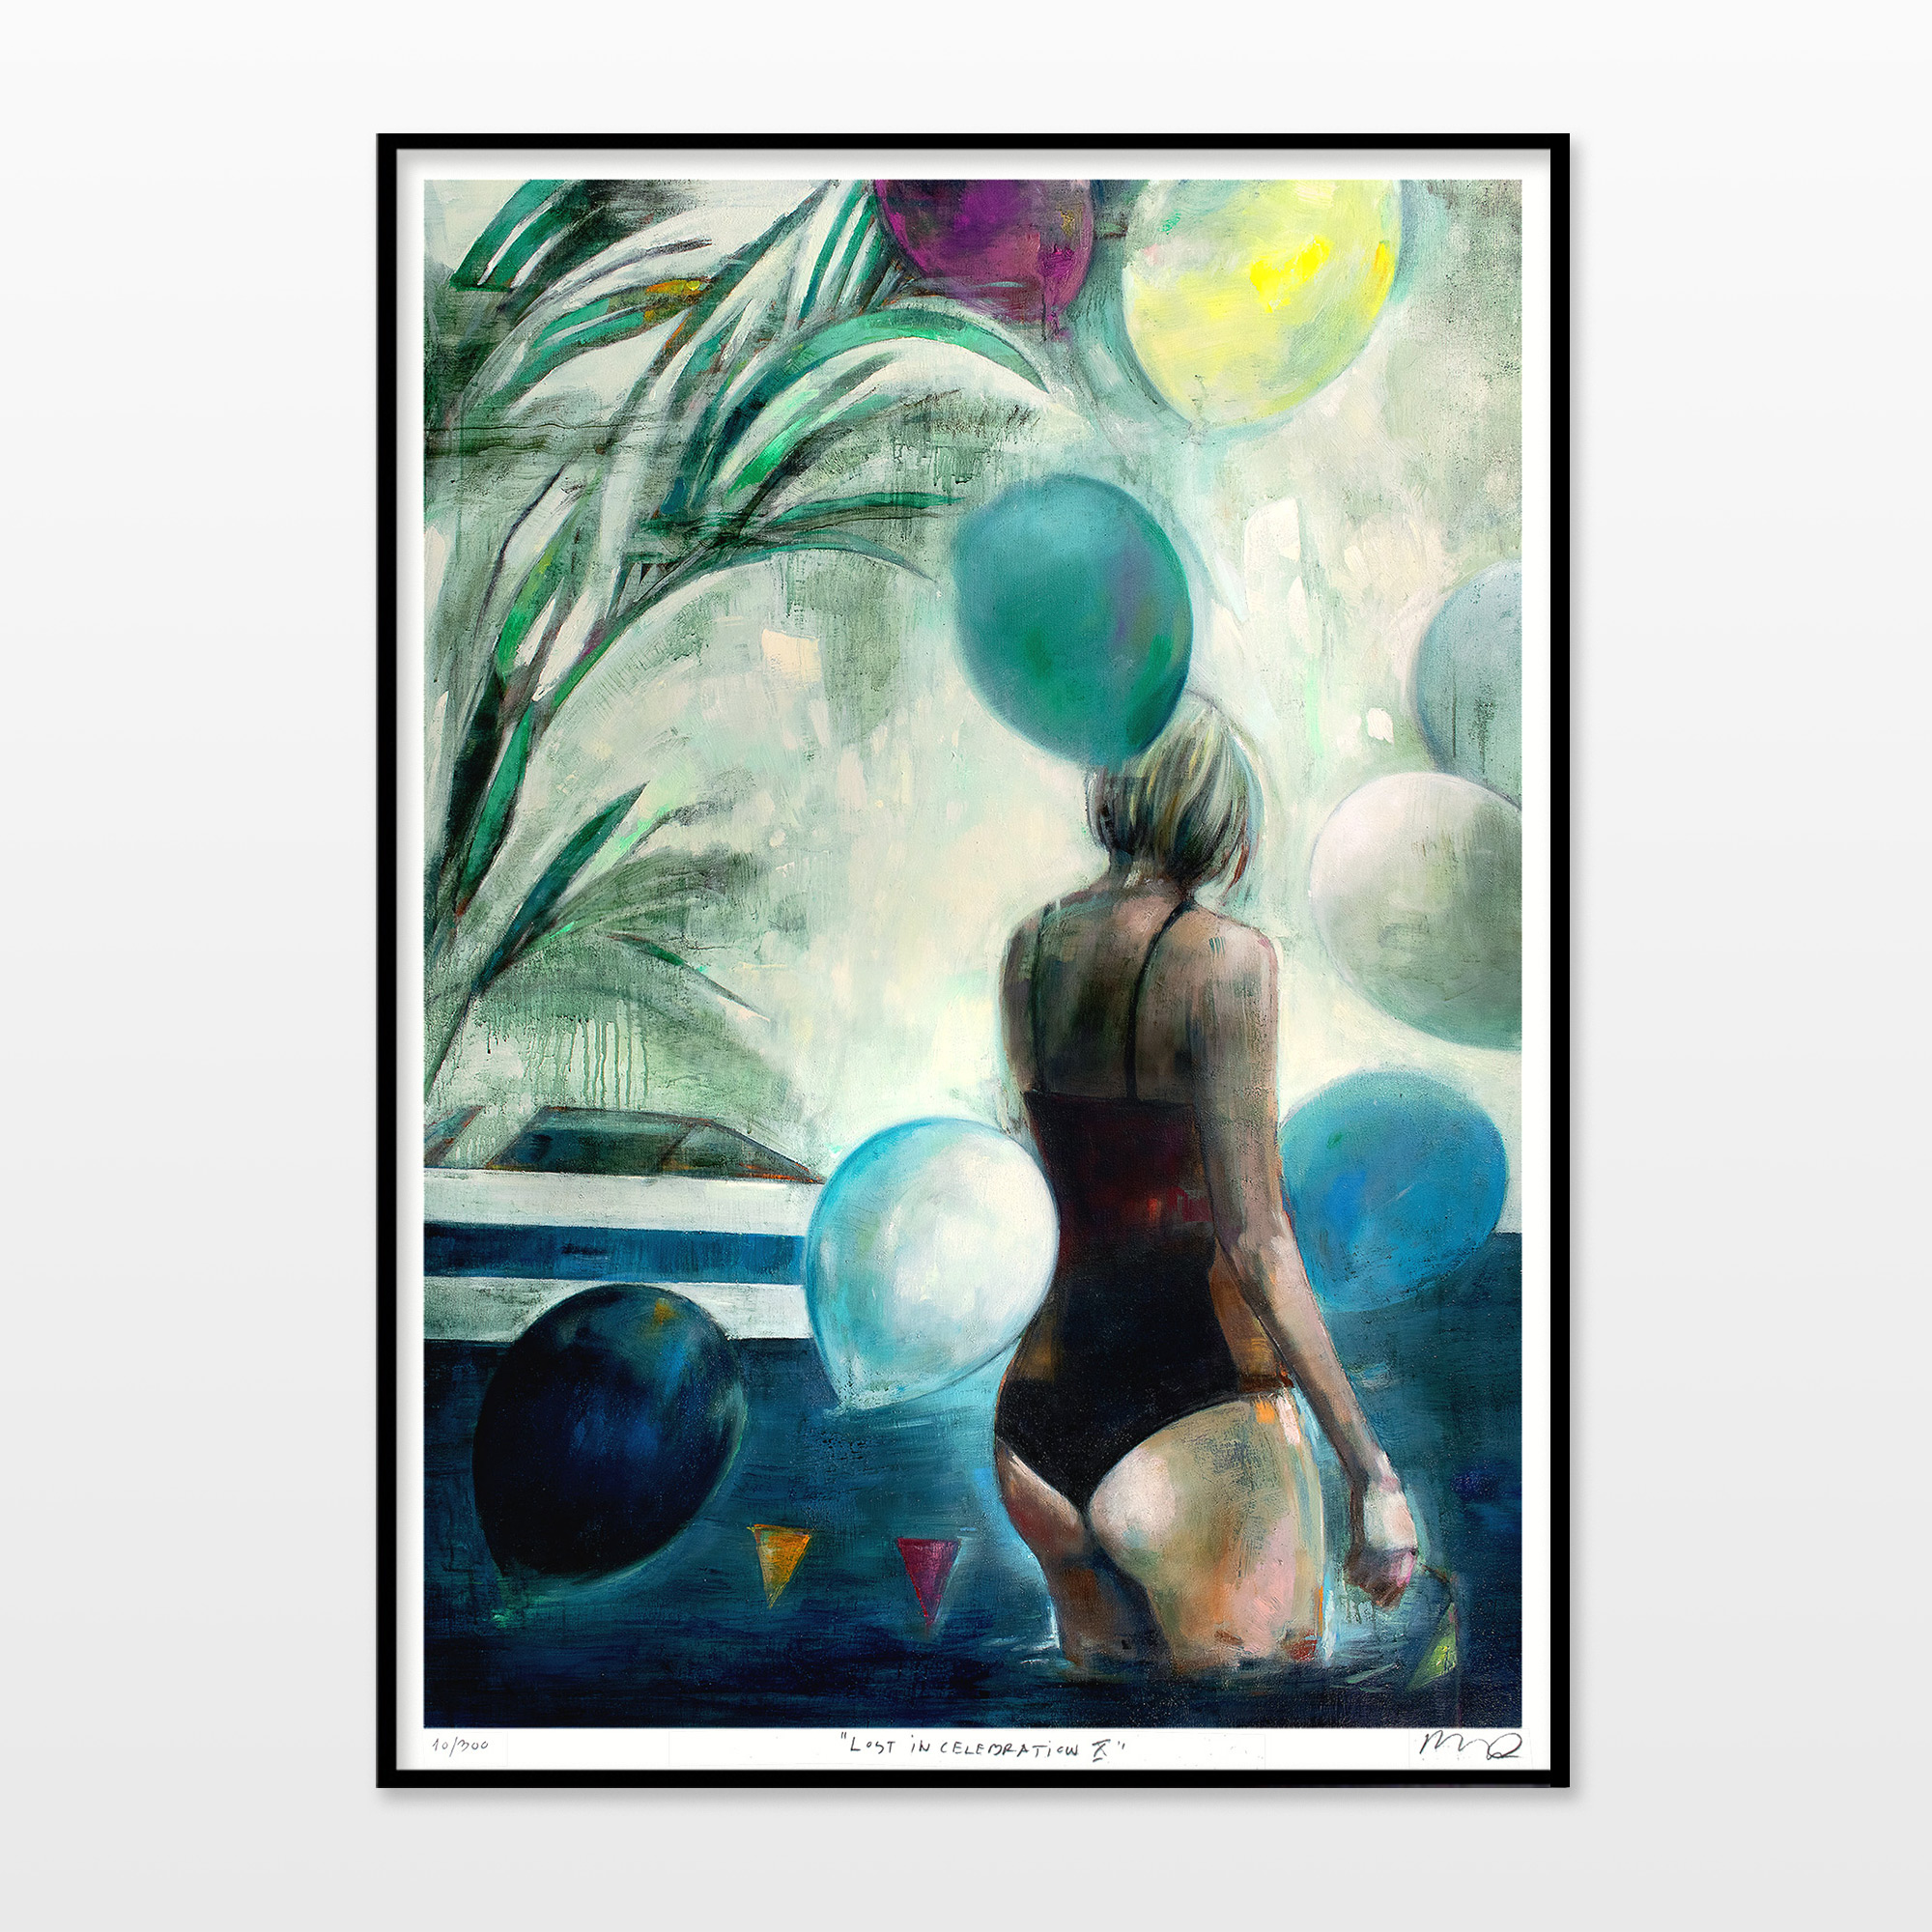 posters-prints, giclee-print, aesthetic, colorful, figurative, graphical, illustrative, landscape, portraiture, bodies, nature, oceans, people, sky, blue, green, turquoise, yellow, ink, paper, beach, beautiful, danish, decorative, design, female, interior, interior-design, nordic, posters, pretty, scandinavien, sea, summer, women, Buy original high quality art. Paintings, drawings, limited edition prints & posters by talented artists.